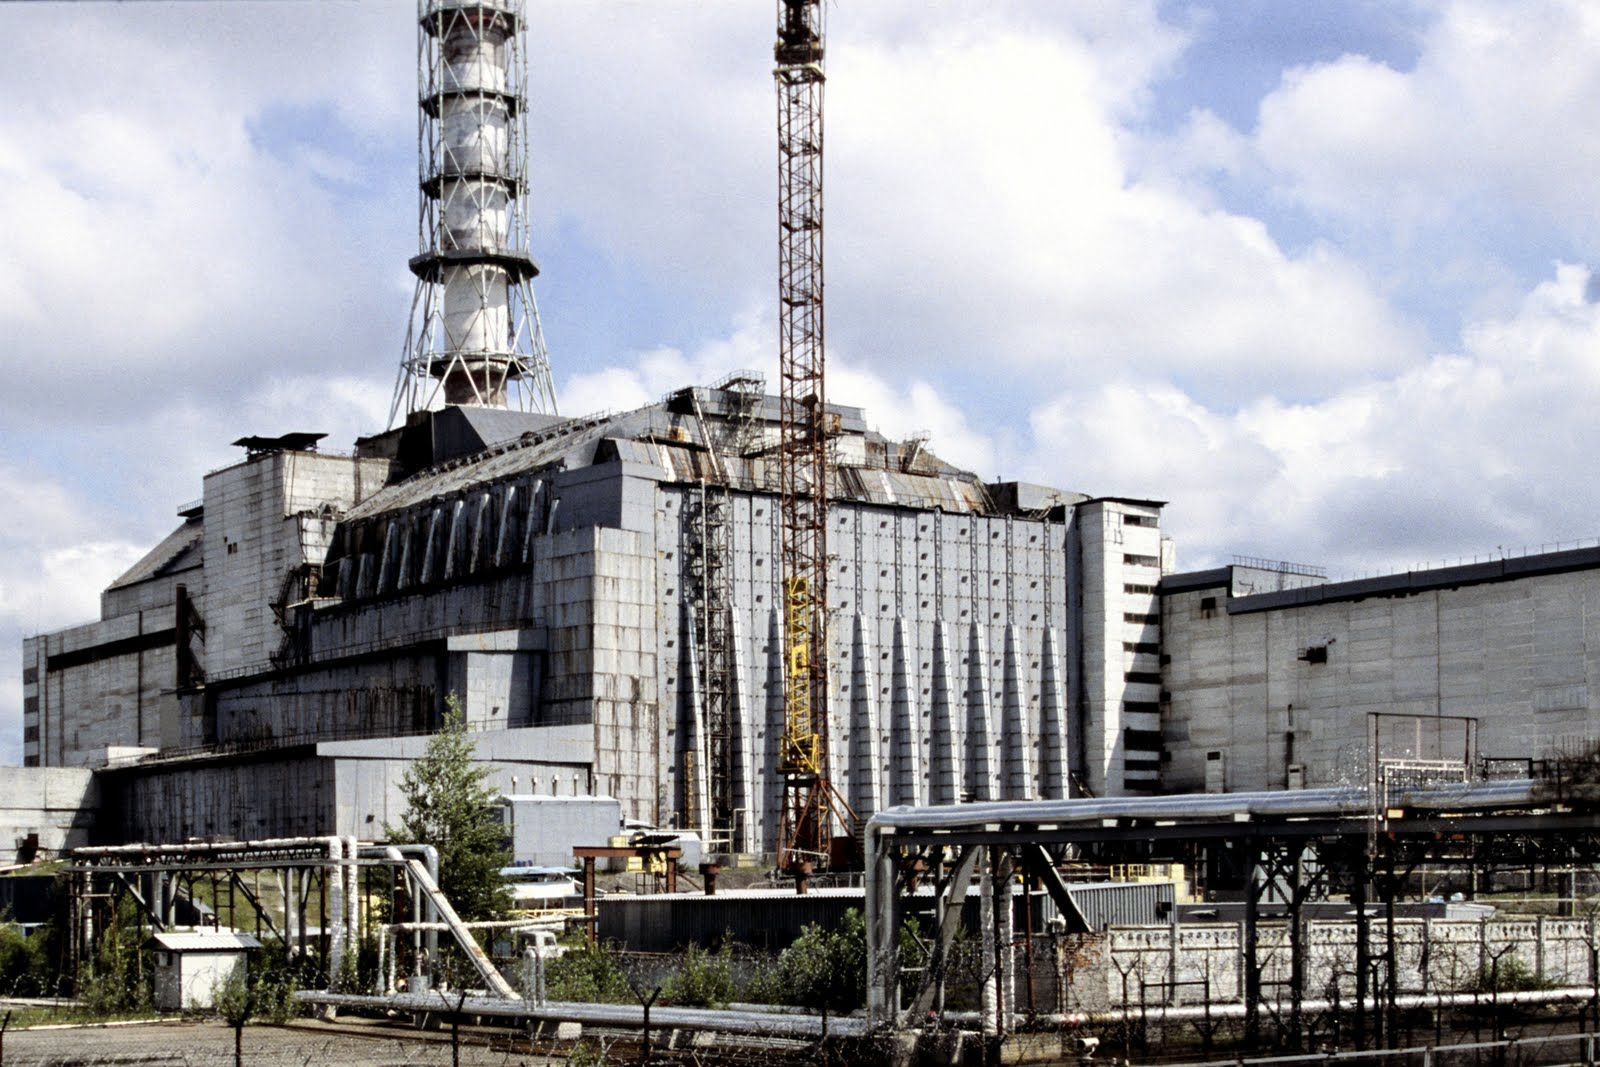 best images about chernobyl nuclear power plant disaster  17 best images about chernobyl nuclear power plant disaster 26 1986 nuclear reactor fukushima and pictures of